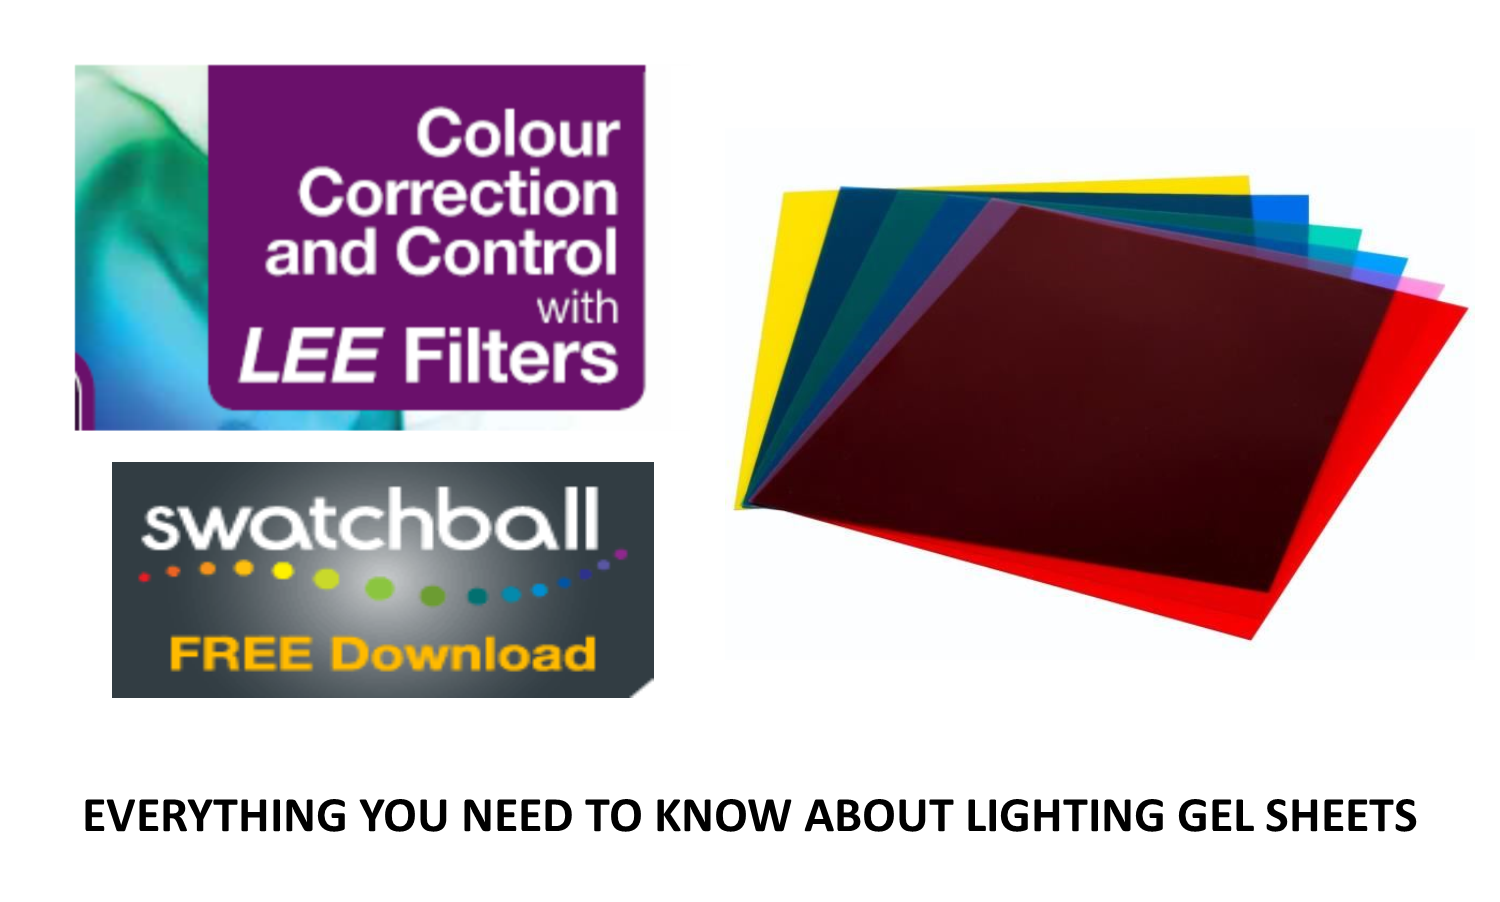 Everything You Need to Know About Lighting Gel Sheets